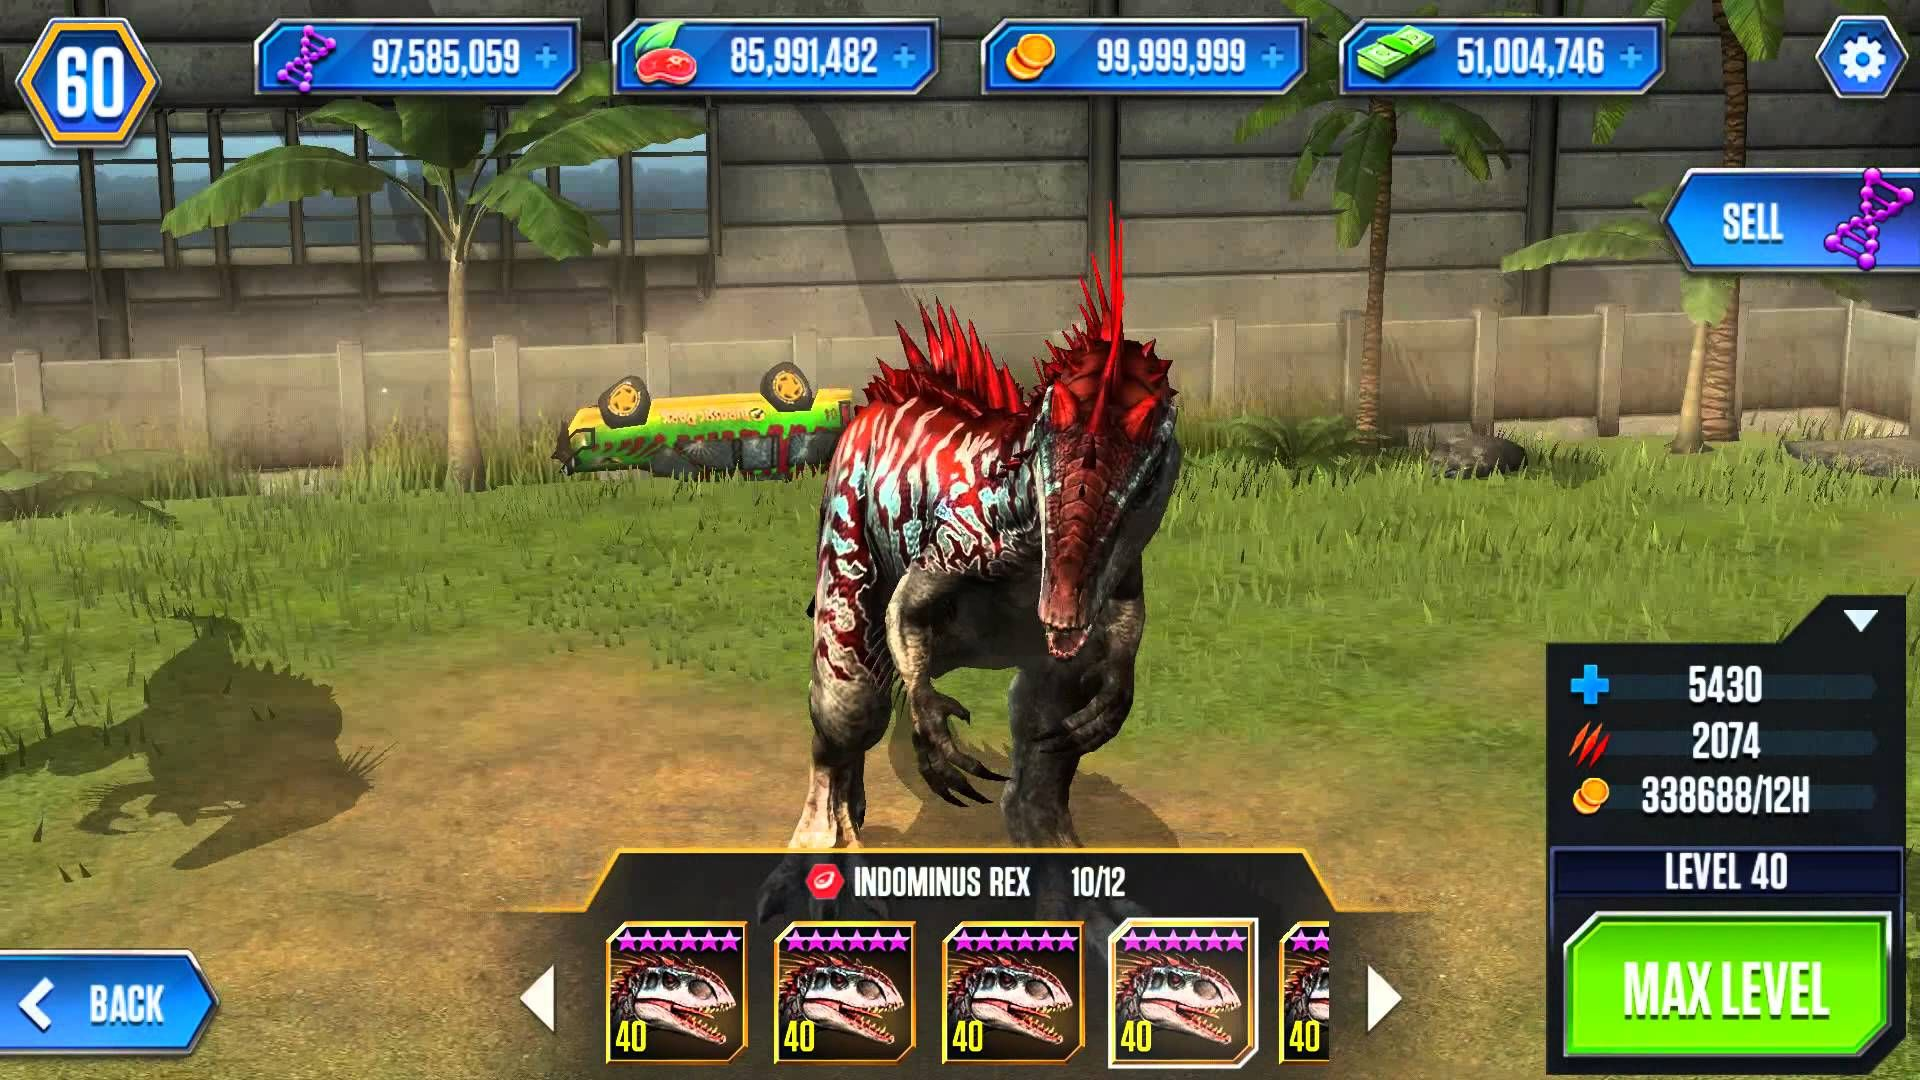 LATEST! Jurassic World The Game Hack 2018 Updated